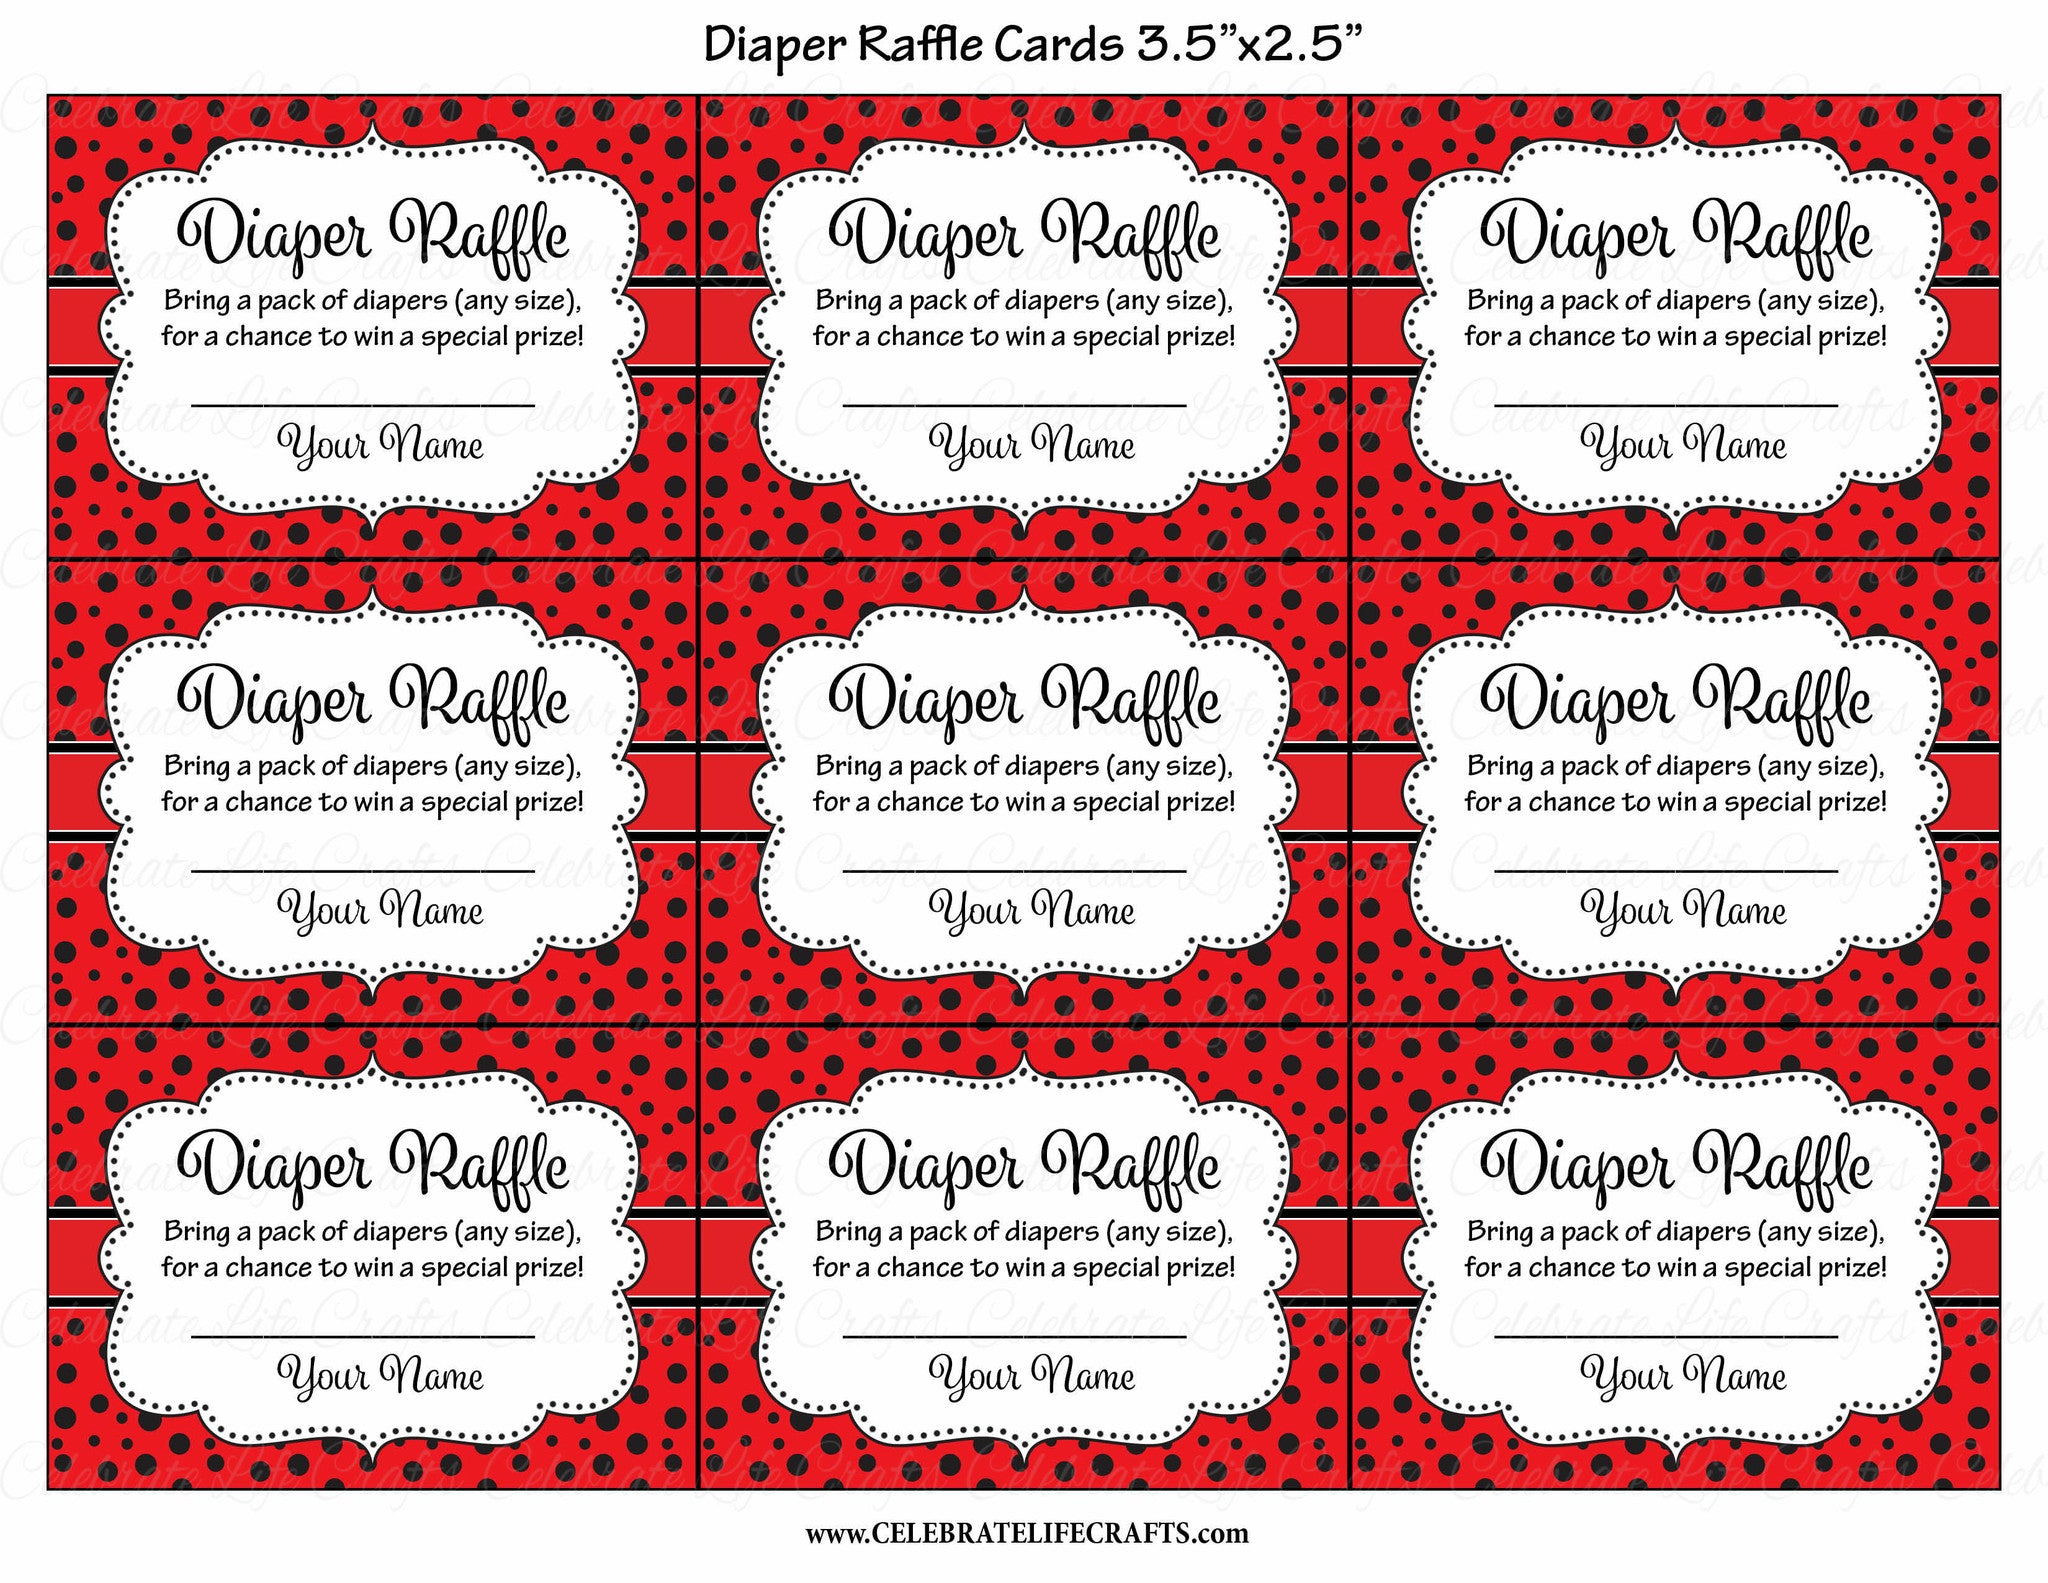 Diaper Raffle Tickets for Baby Shower - Ladybug Baby Shower Theme ...